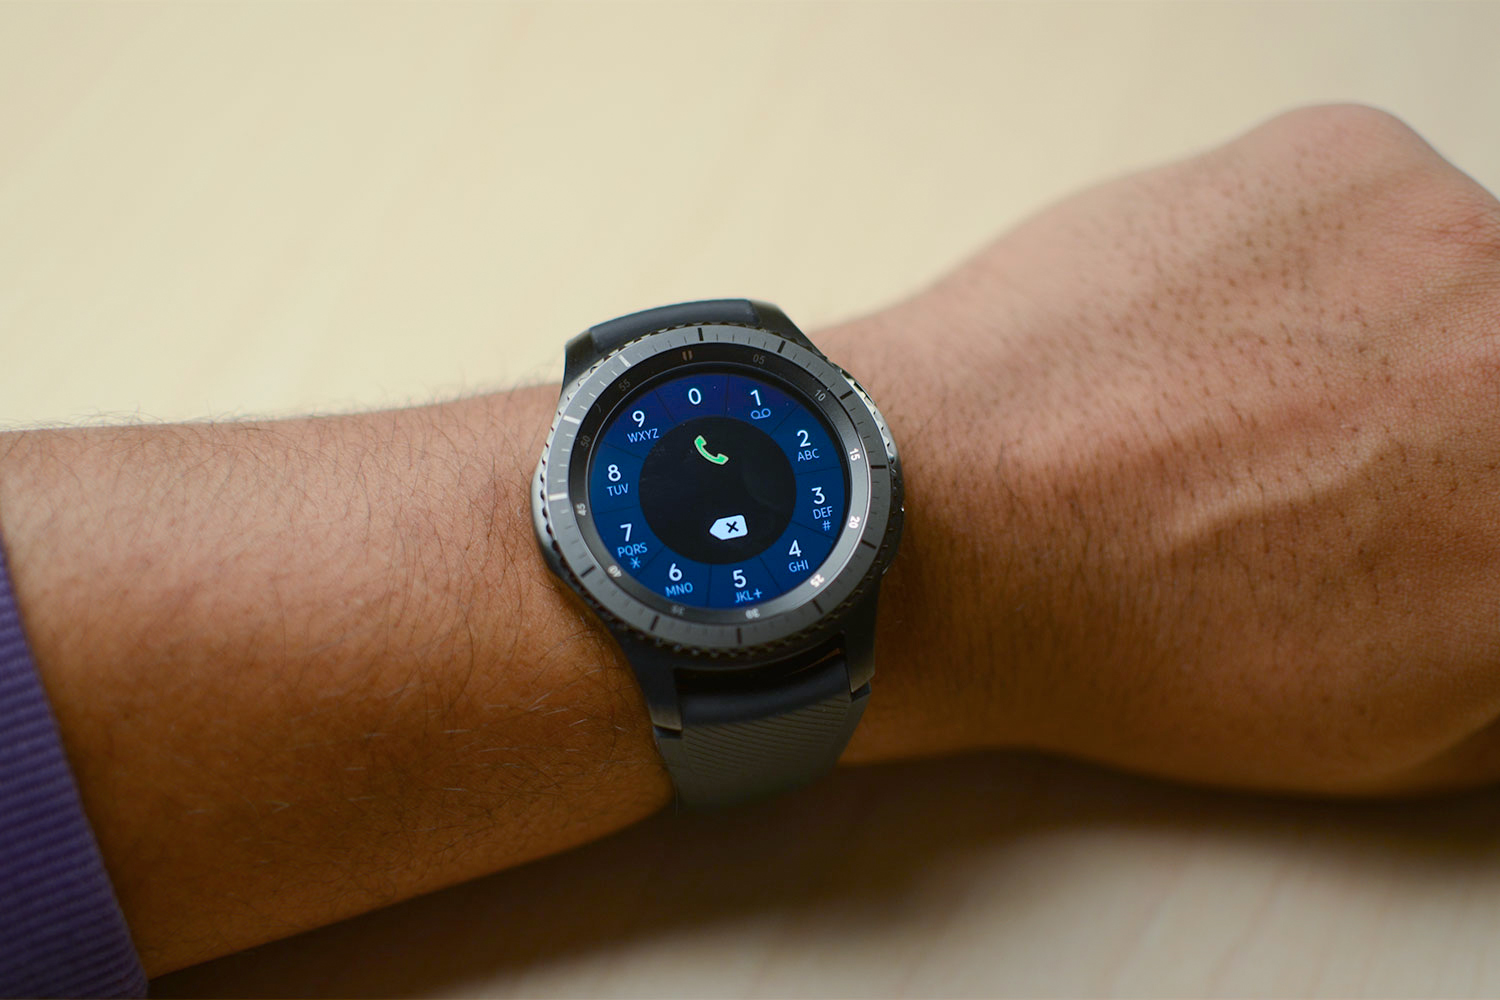 Samsung Gear S3 Review: A Great Watch for Android Owners | Digital Trends